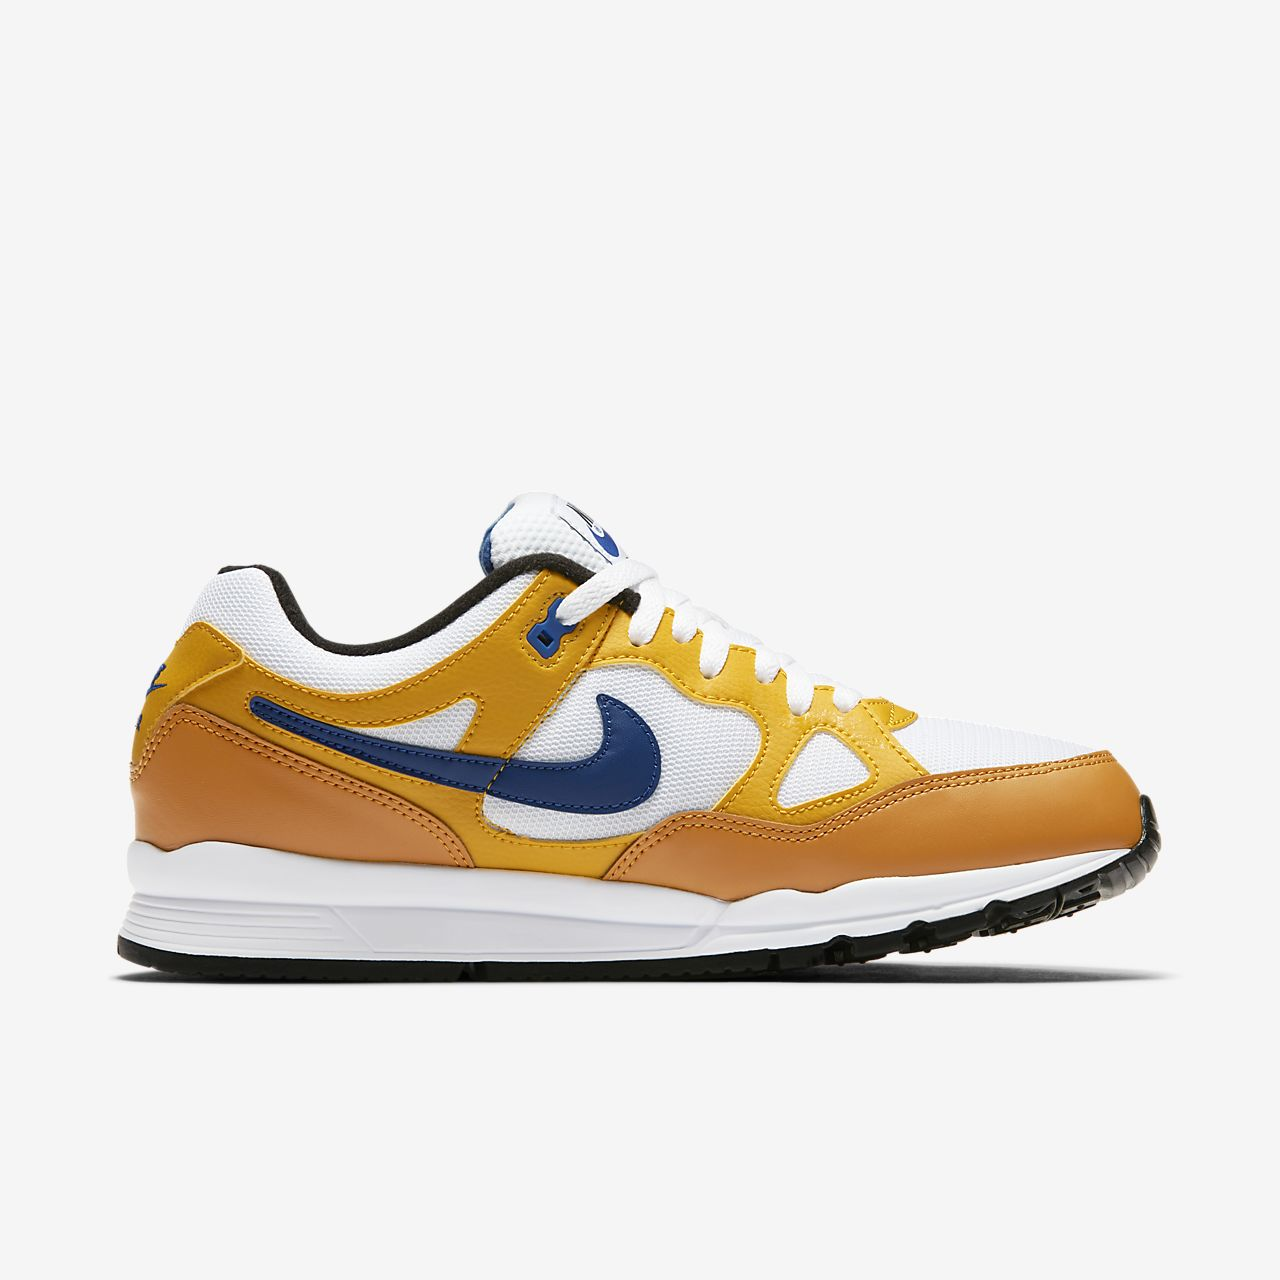 new arrival c43f3 7209a ... Chaussure Nike Air Span II pour Homme